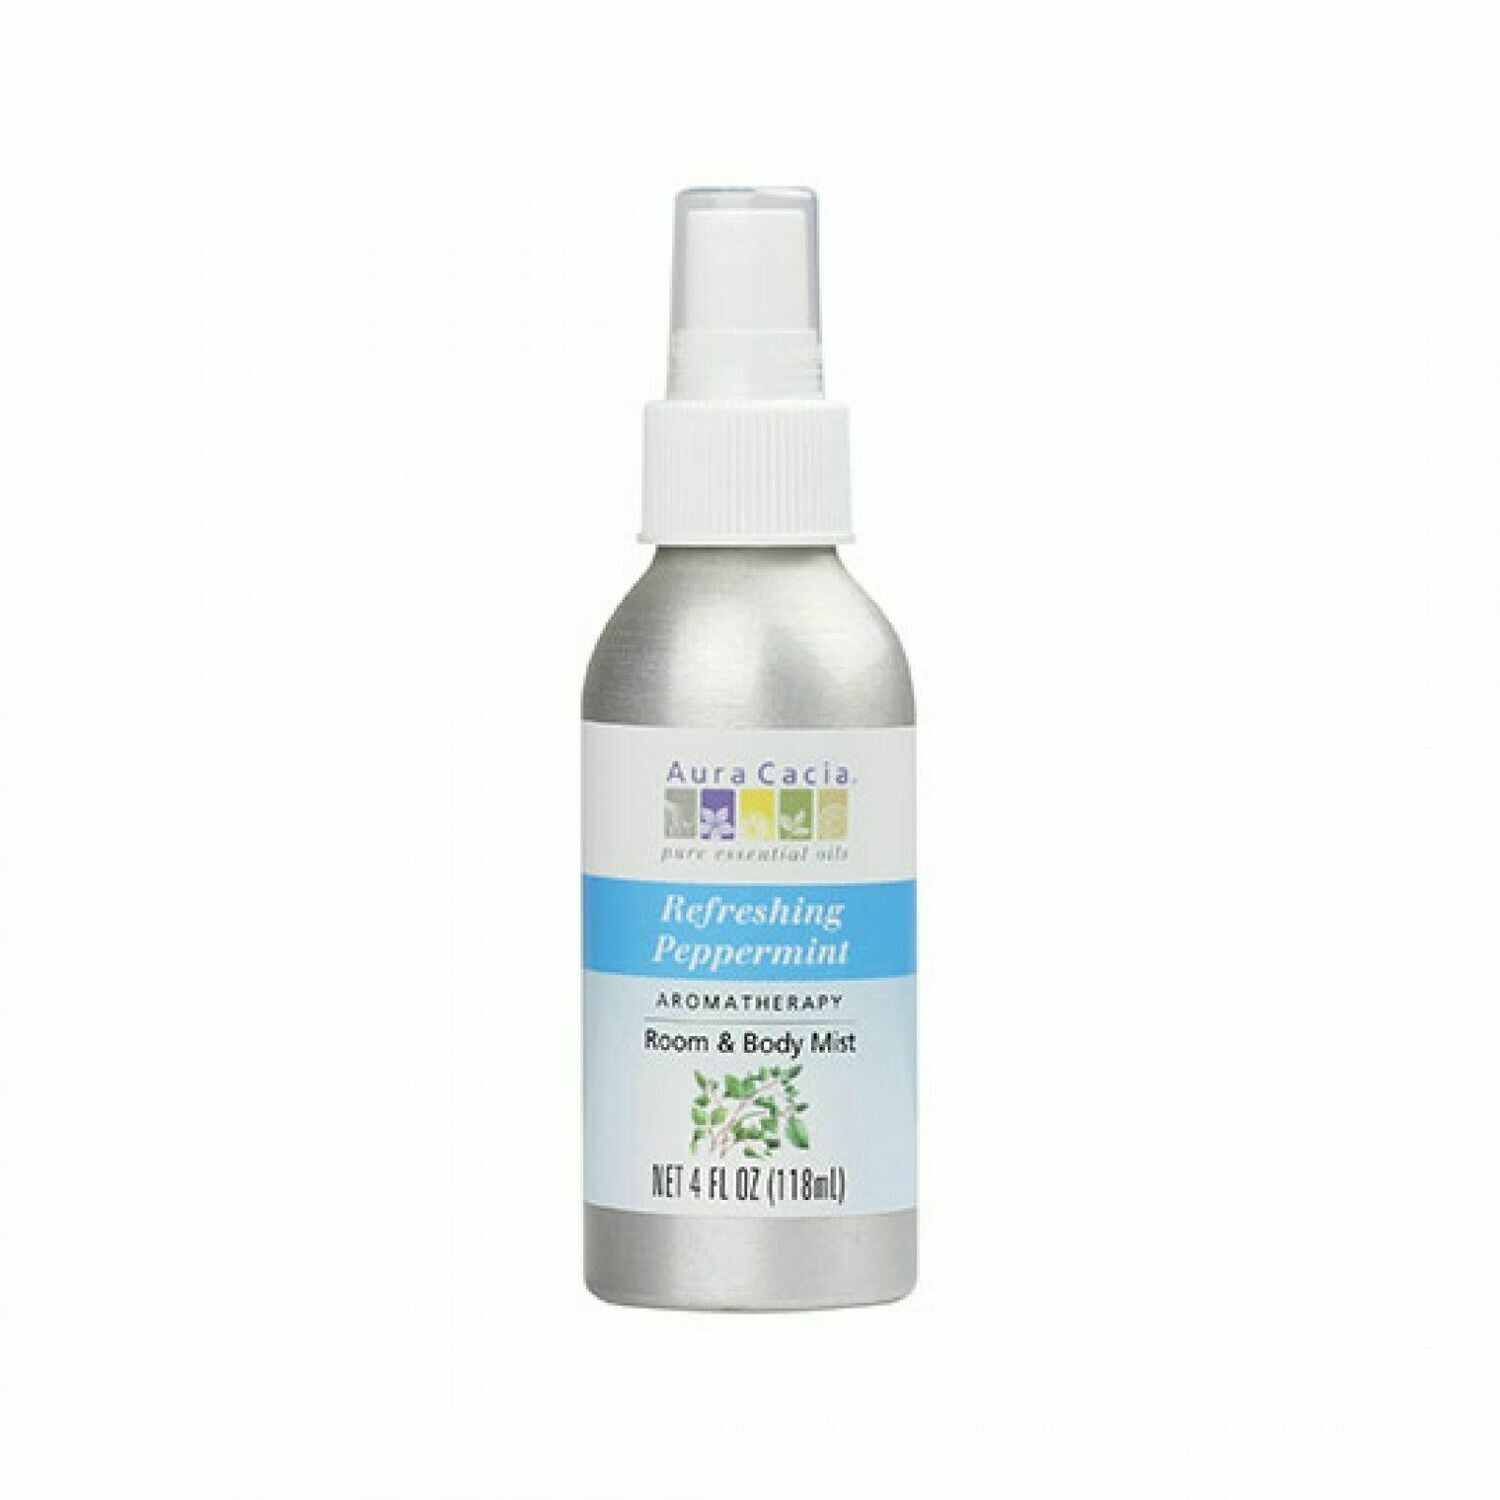 Refreshing Peppermint Mist 4 oz.